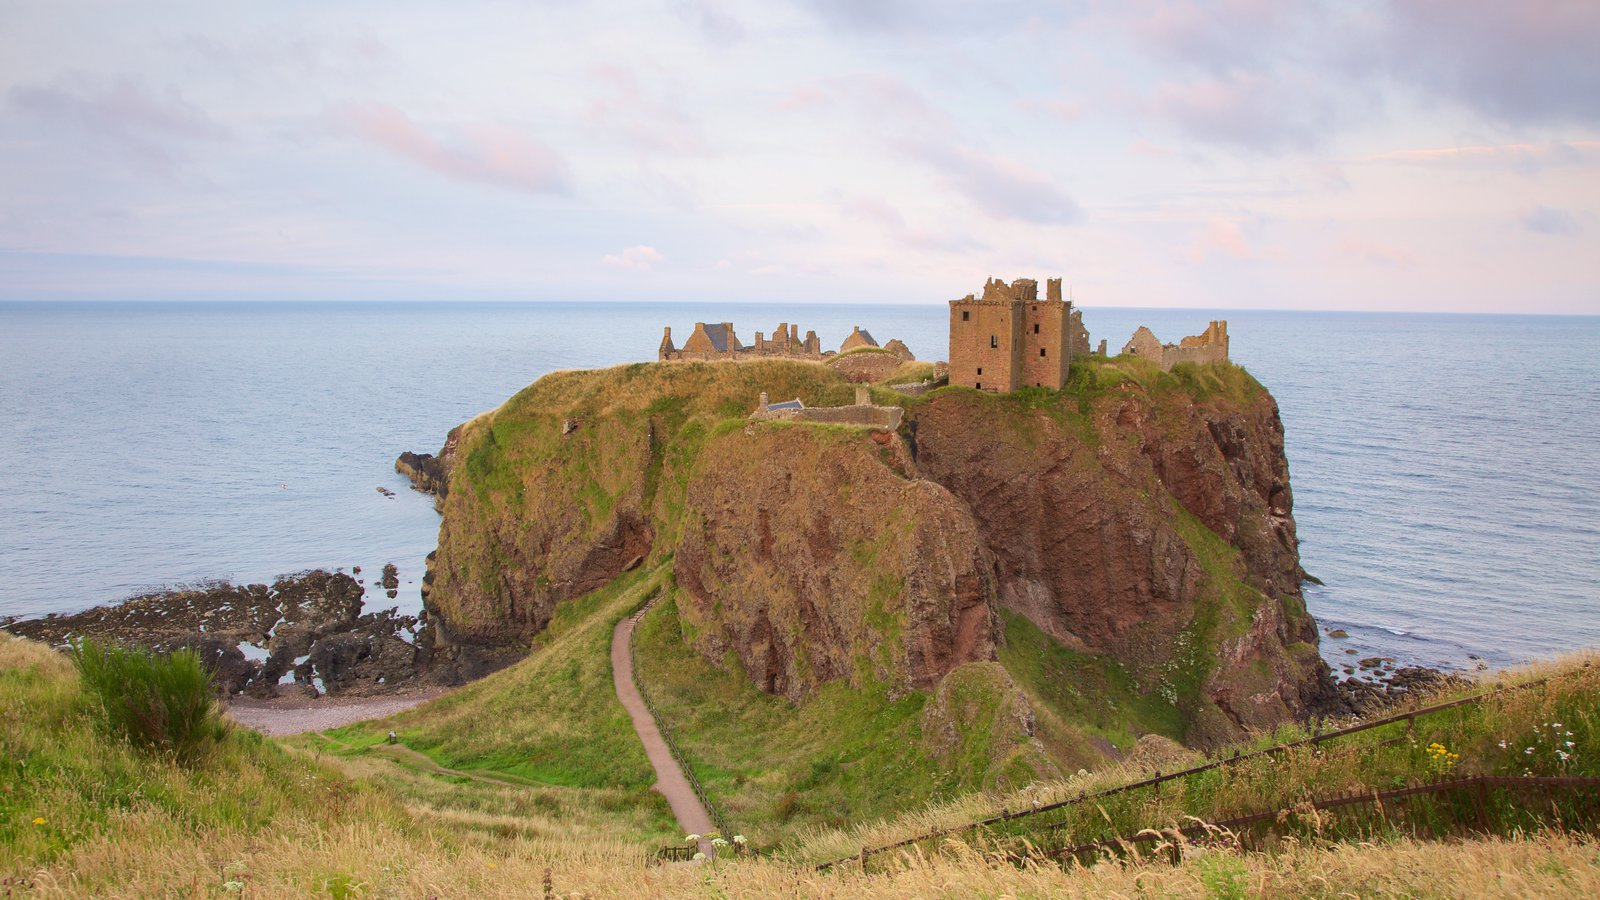 Dunnottar Castle which includes farmland and chateau or palace